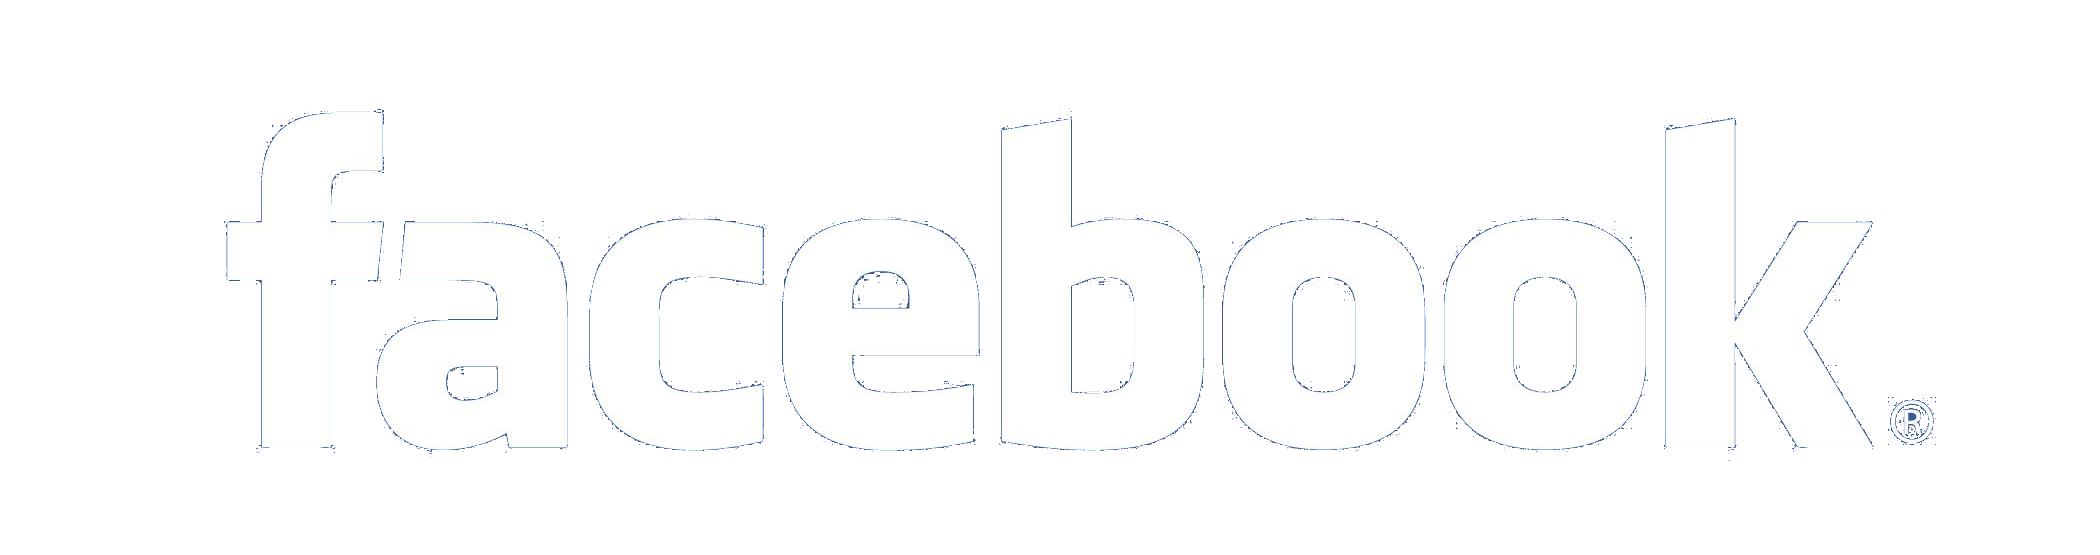 Facebook White Logo Png 3 Archery Tag Budapest